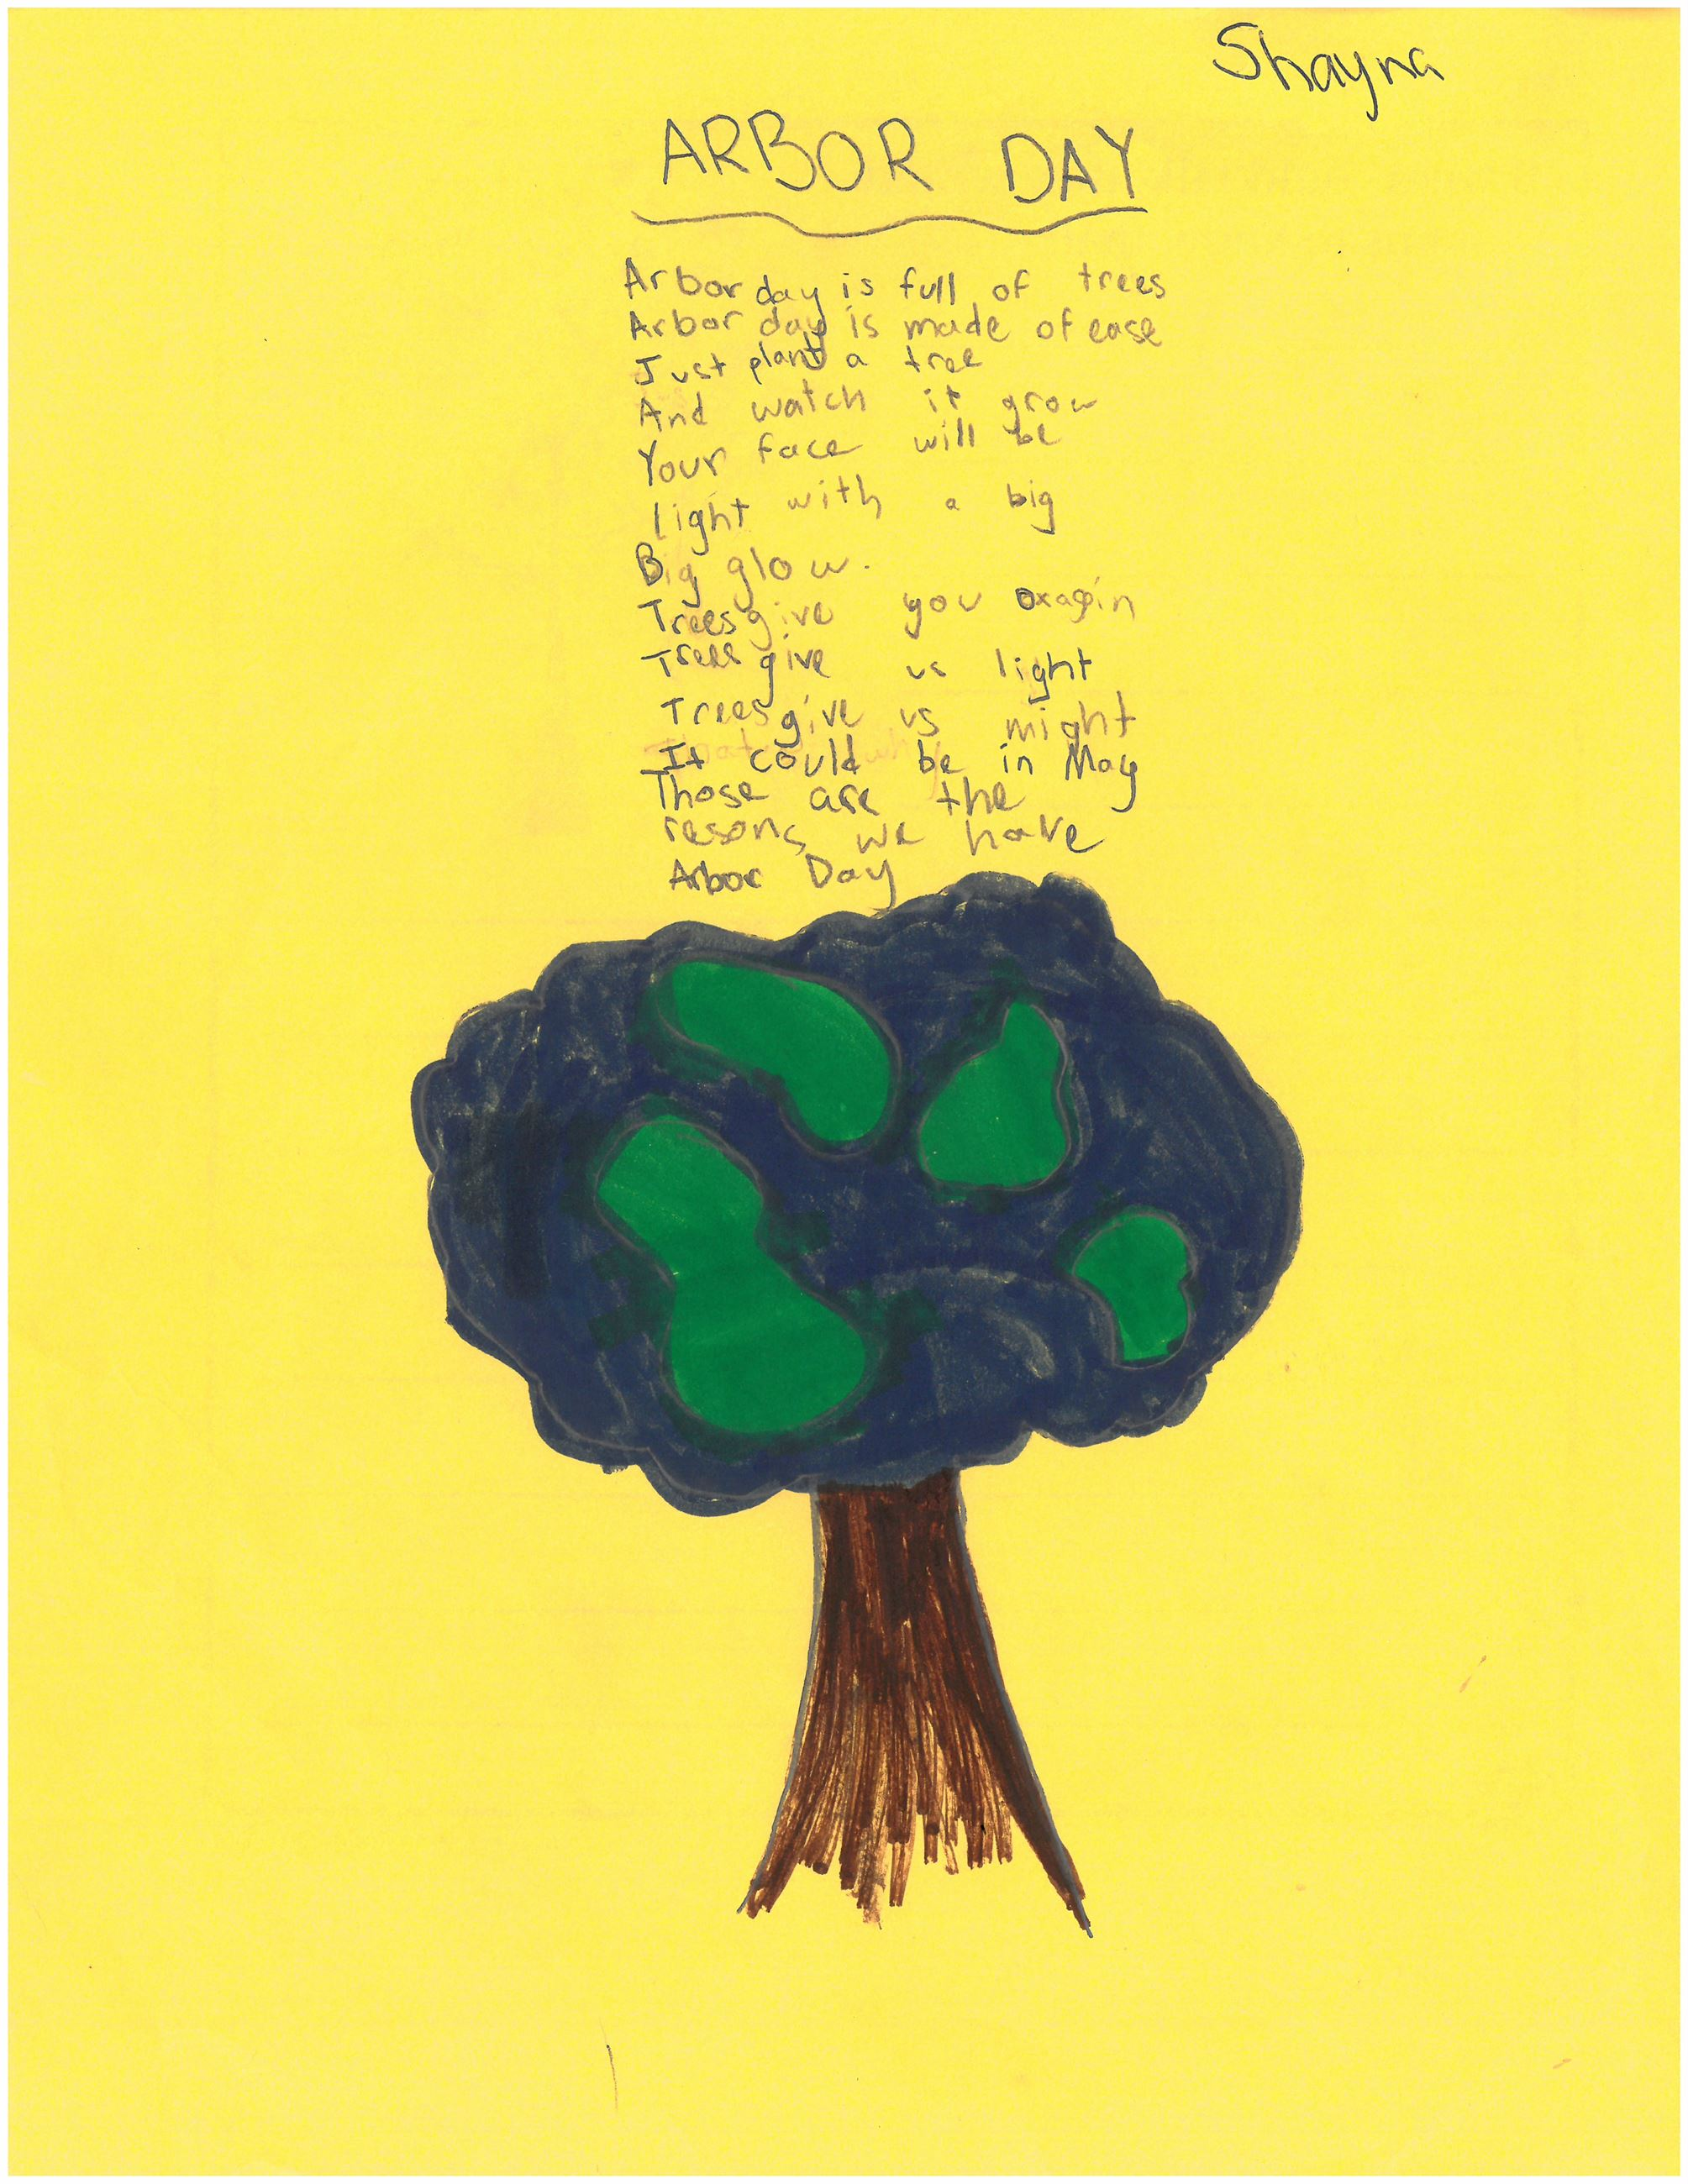 Picture of of tree and a poem about Arbor Day designed by a Hilltop student.